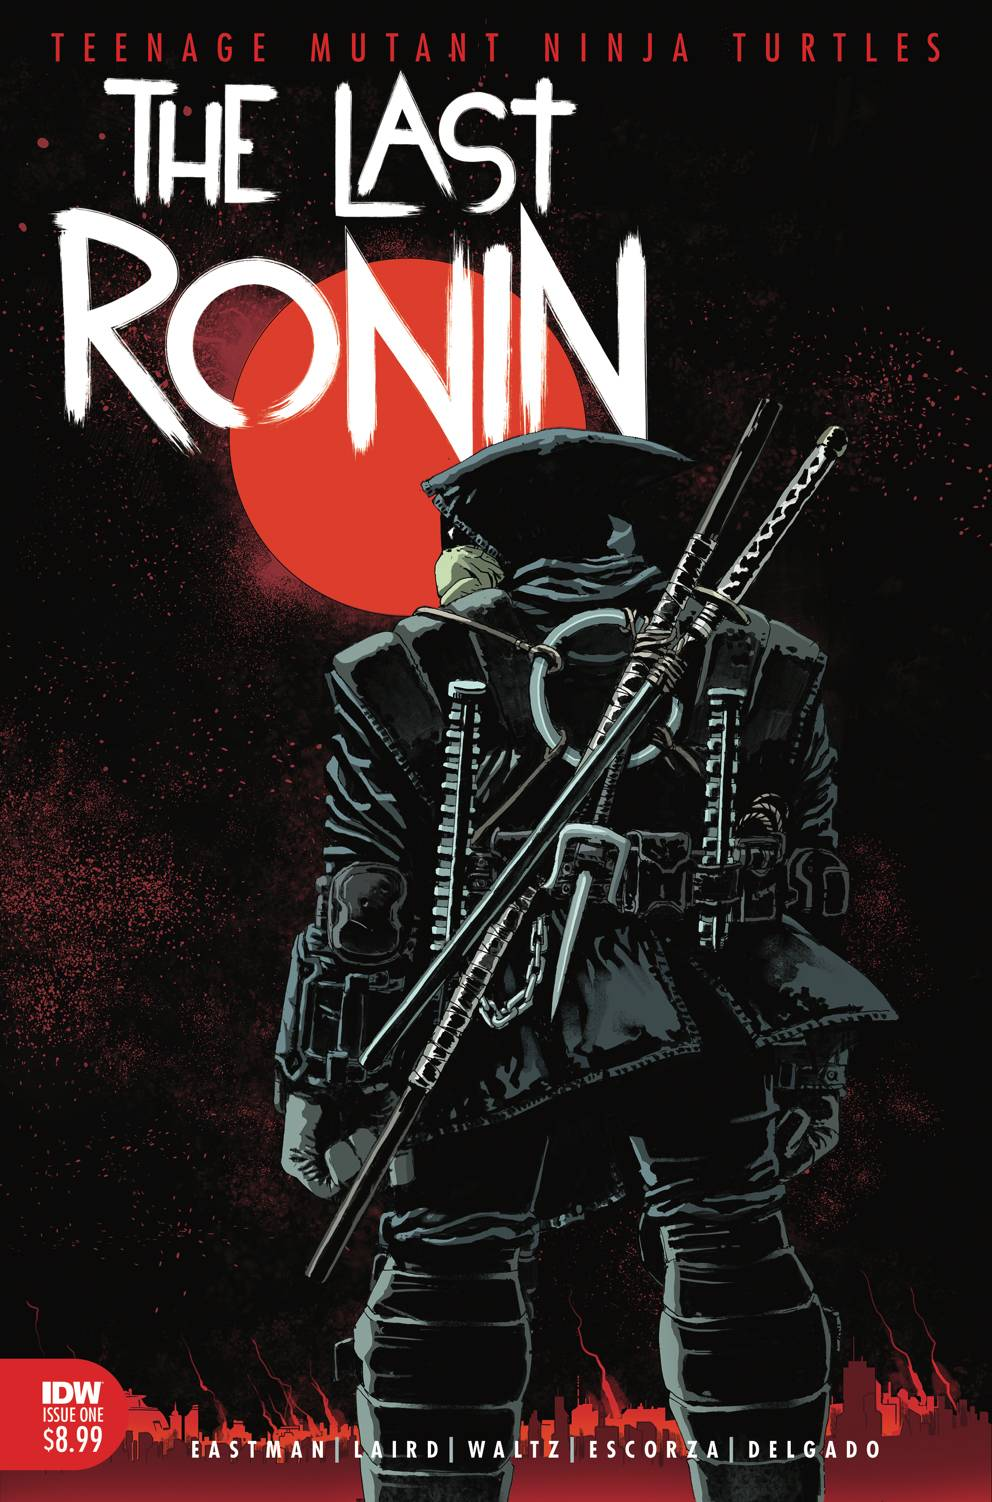 TMNT THE LAST RONIN #1 (OF 5) CVR A EASTMAN KUHN